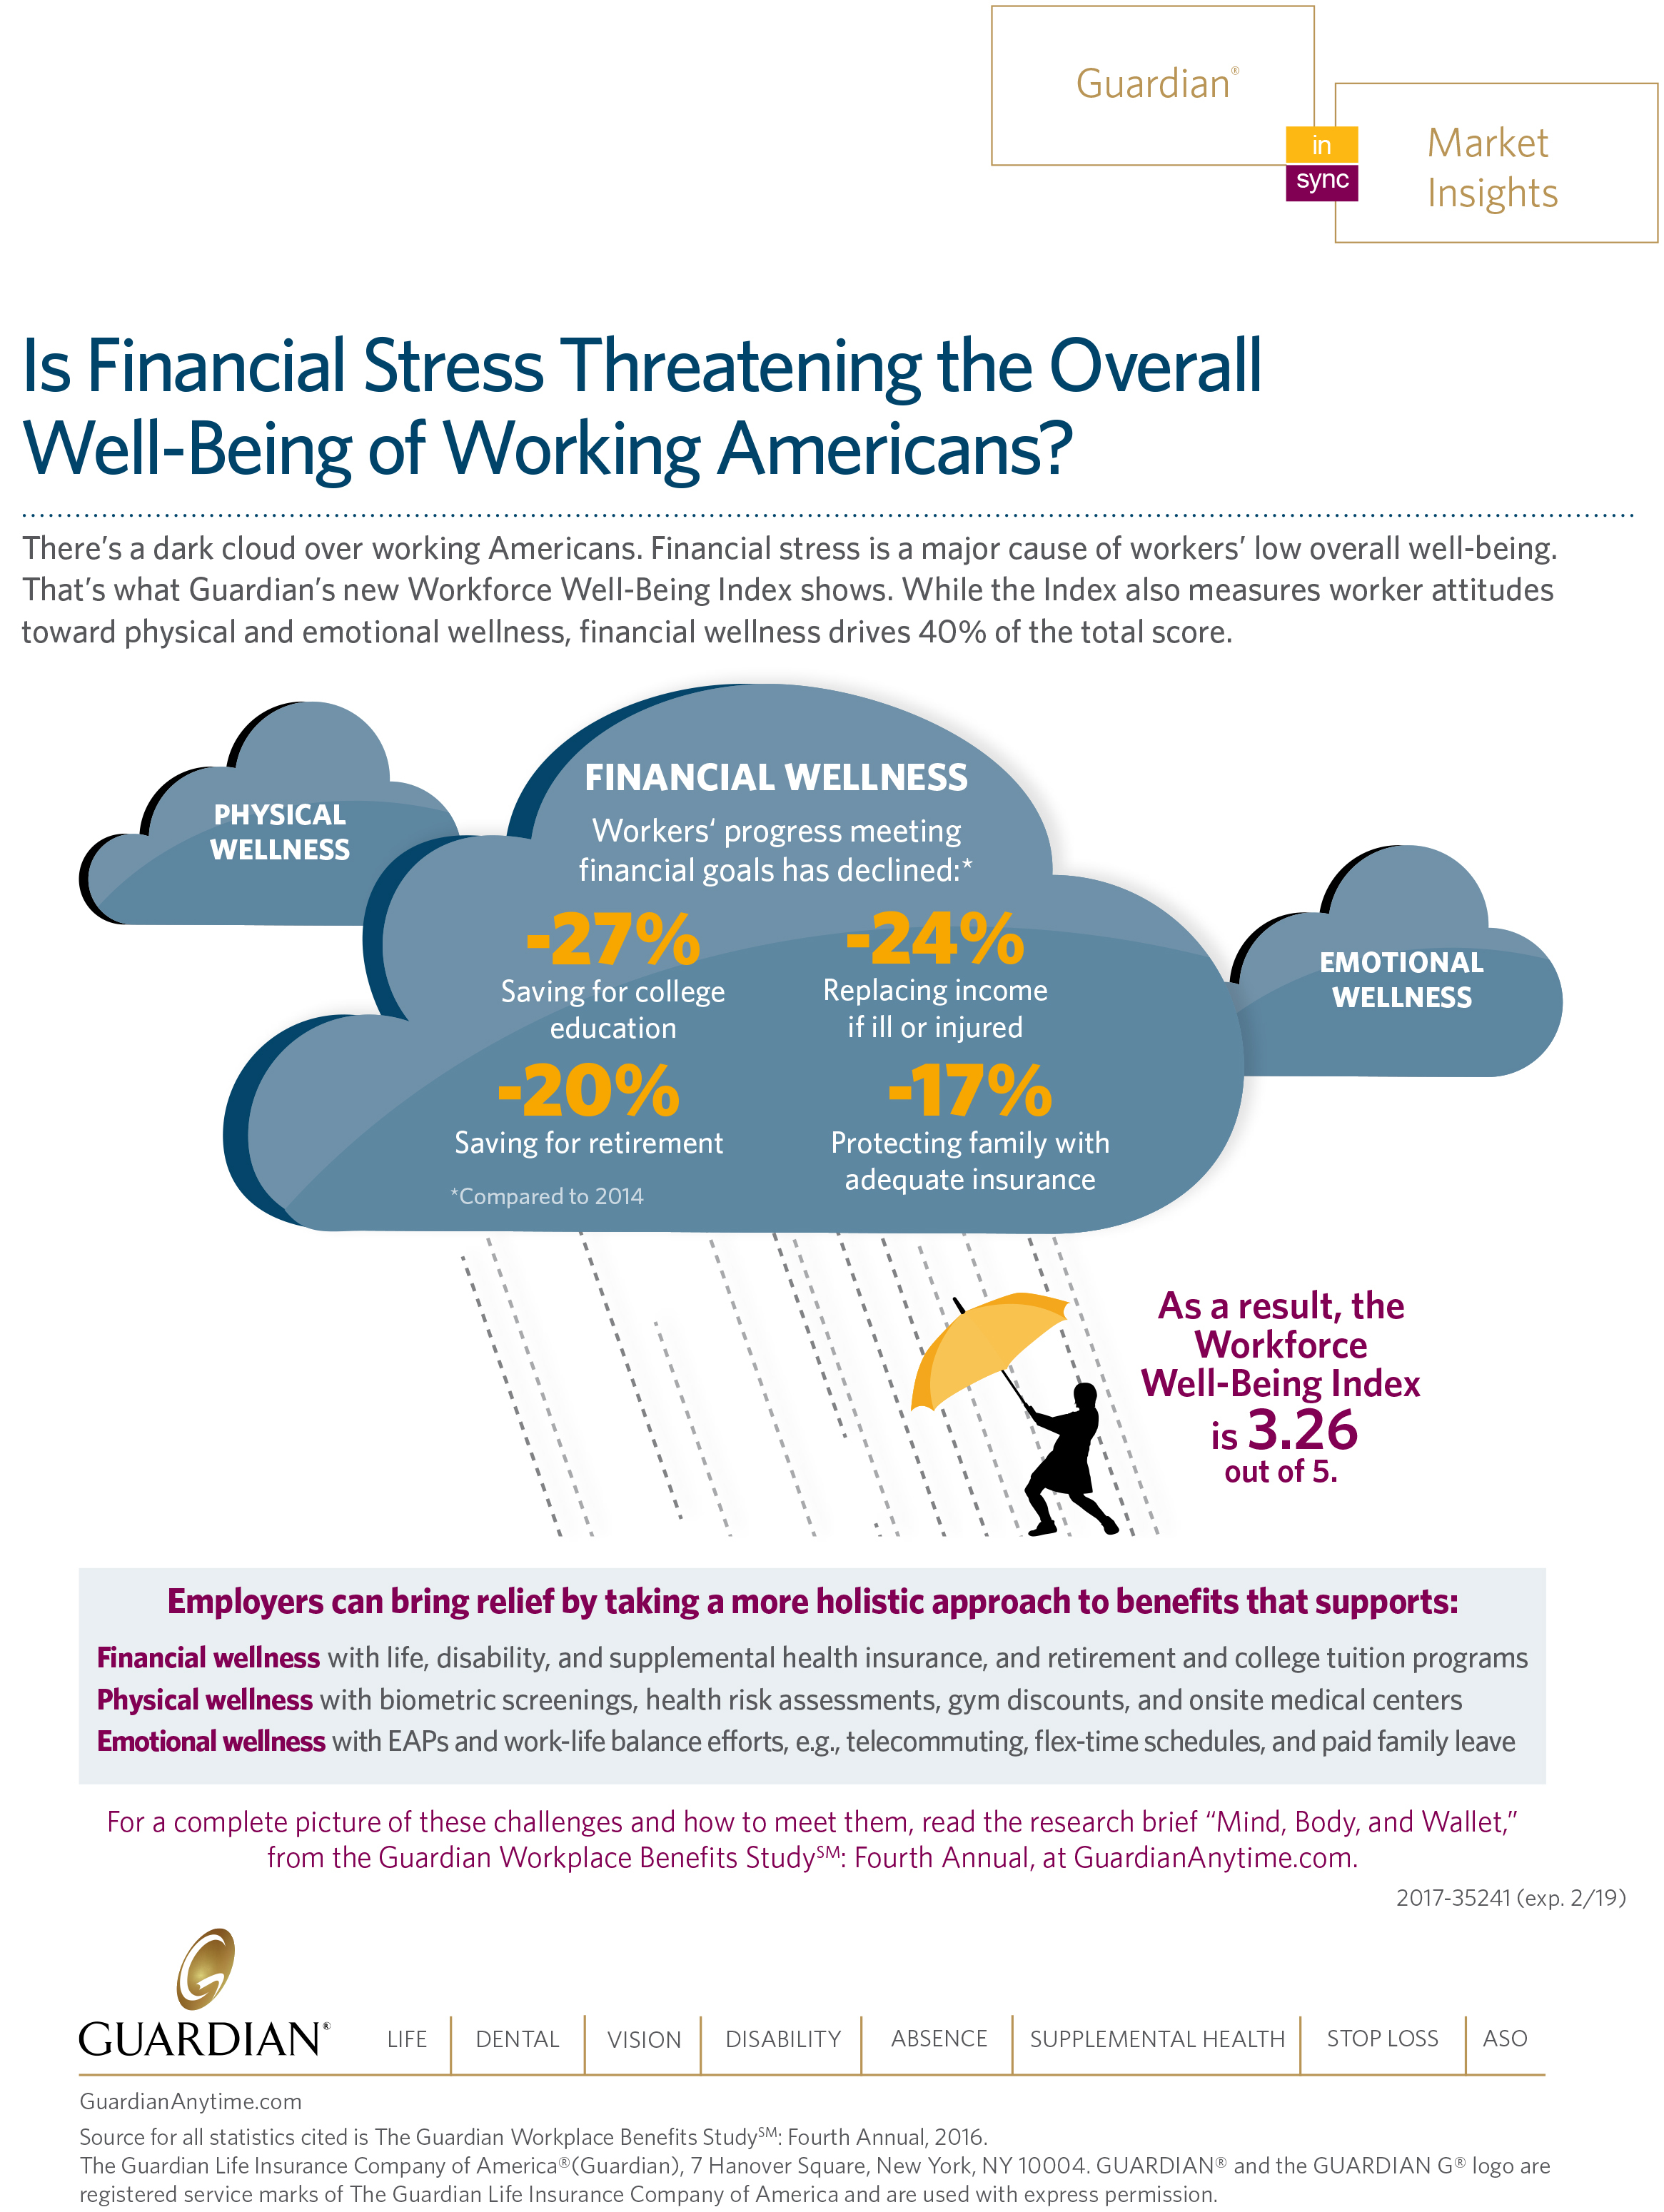 Guardian's new Workforce Well-Being Index reveals financial stress is a major cause of workers' low overall well-being. (Graphic: Business Wire)